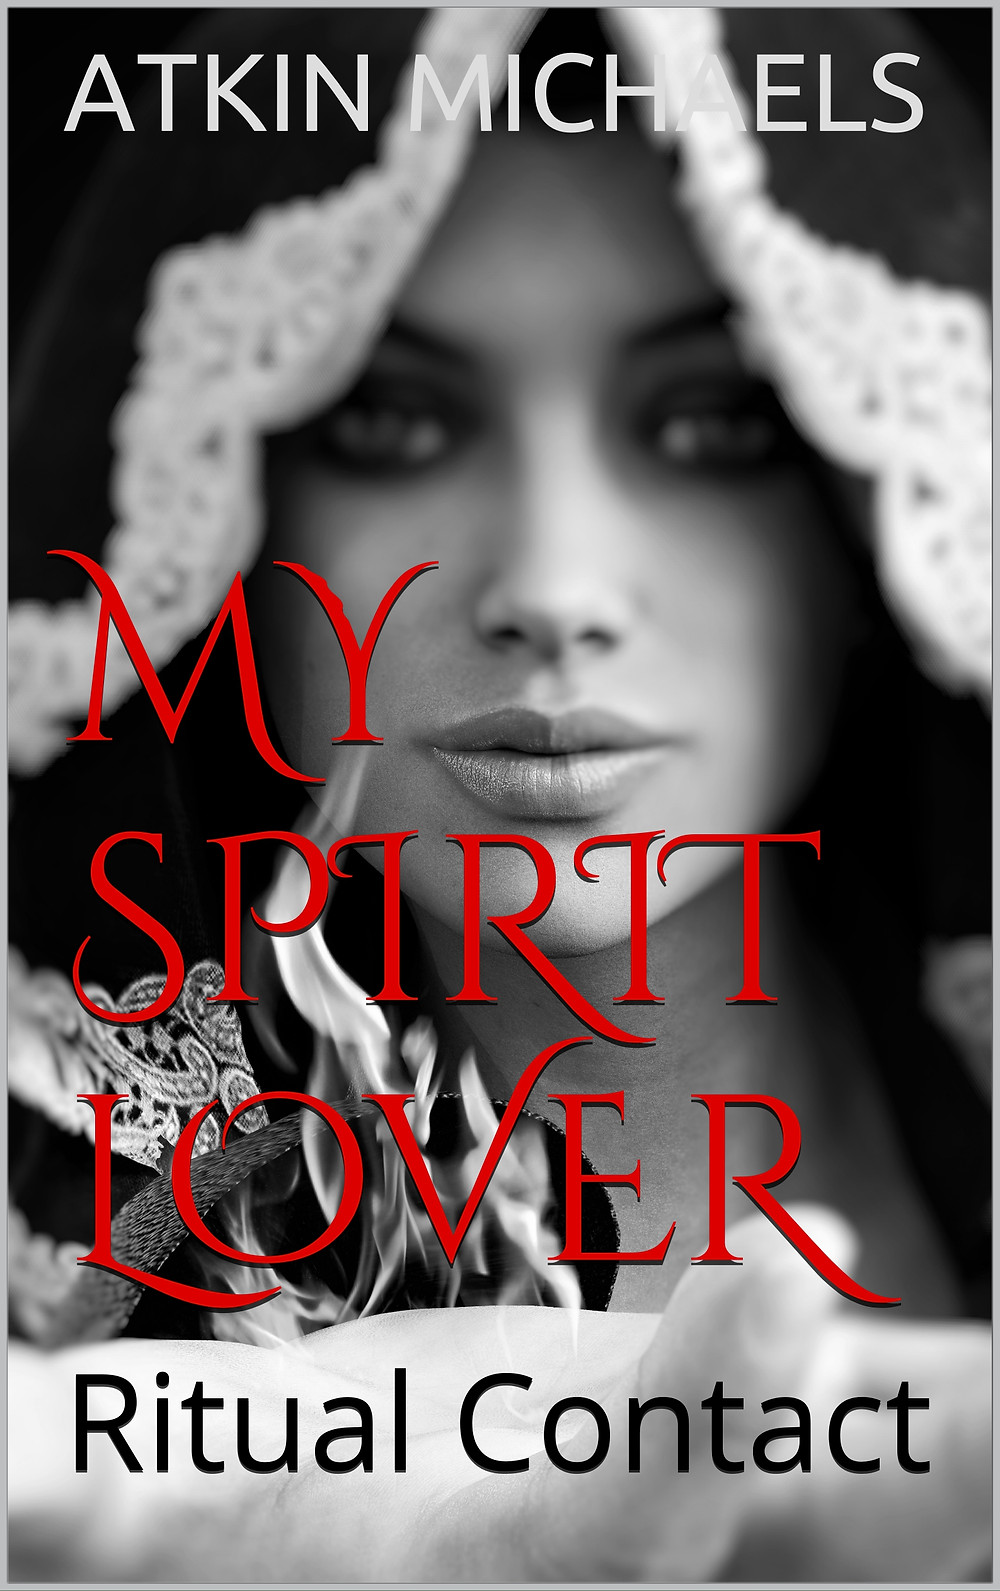 MY SPIRIT LOVER - Ritual Contact, by Atkin Michaels